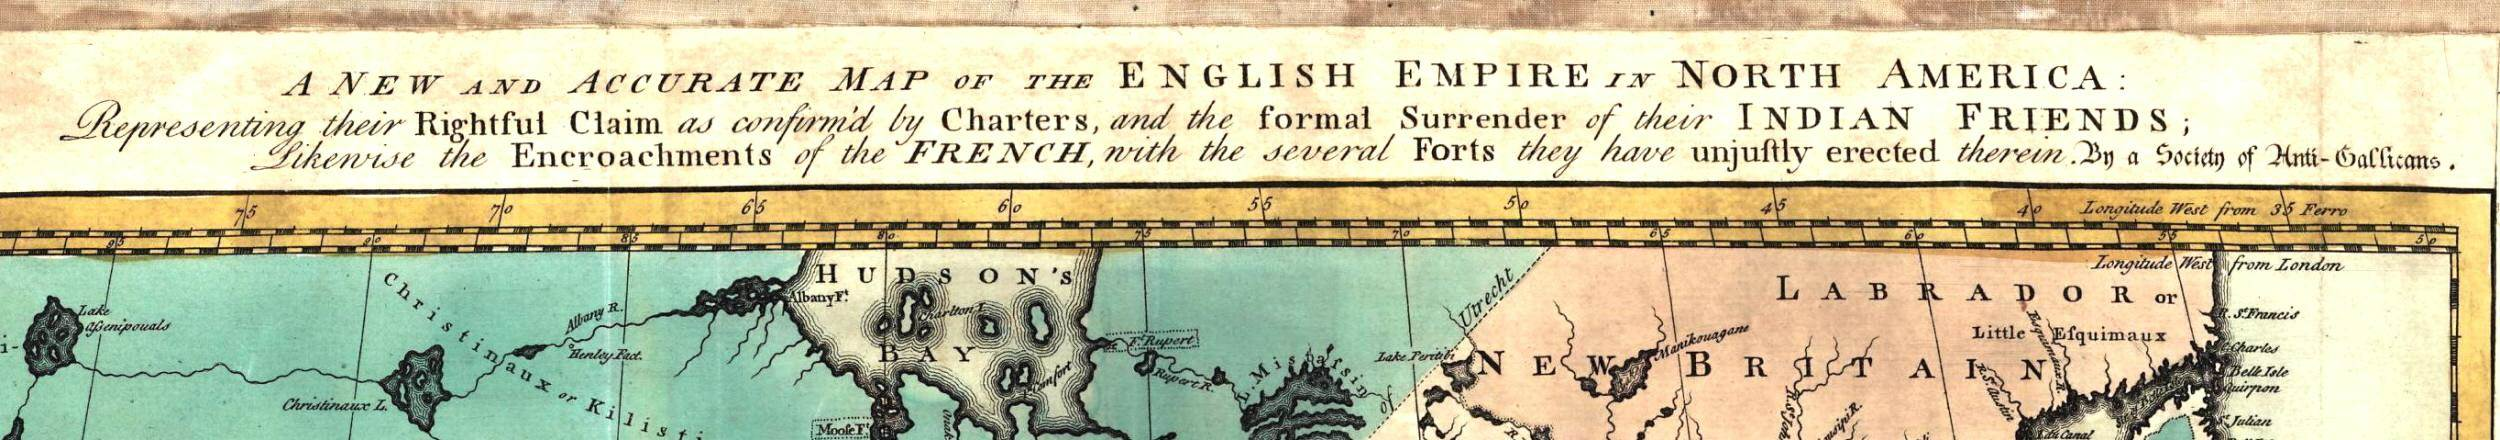 1755 map of the English Empire in North America